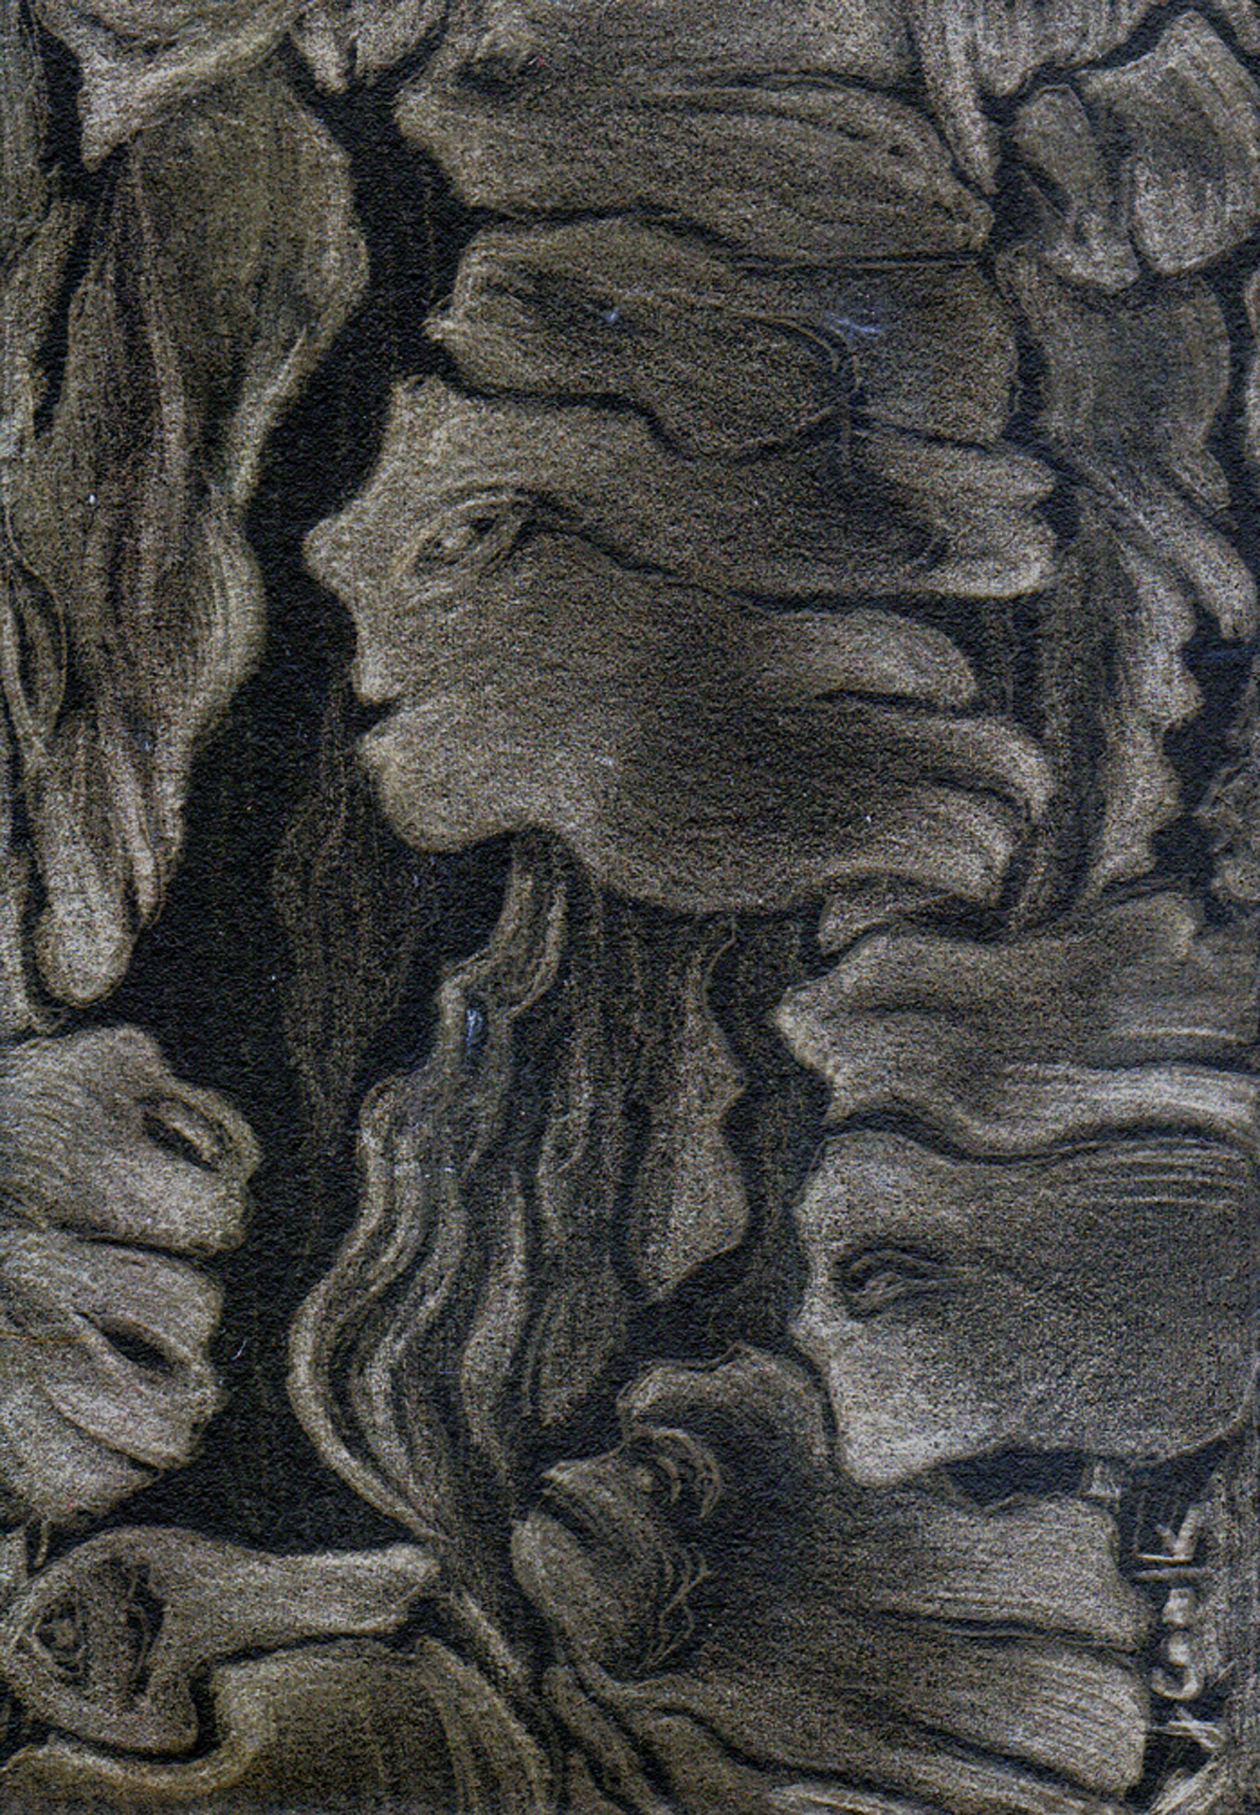 Ariadne's Thread I - pine tree bark, silverpoint on black, Jeannine Cook artist